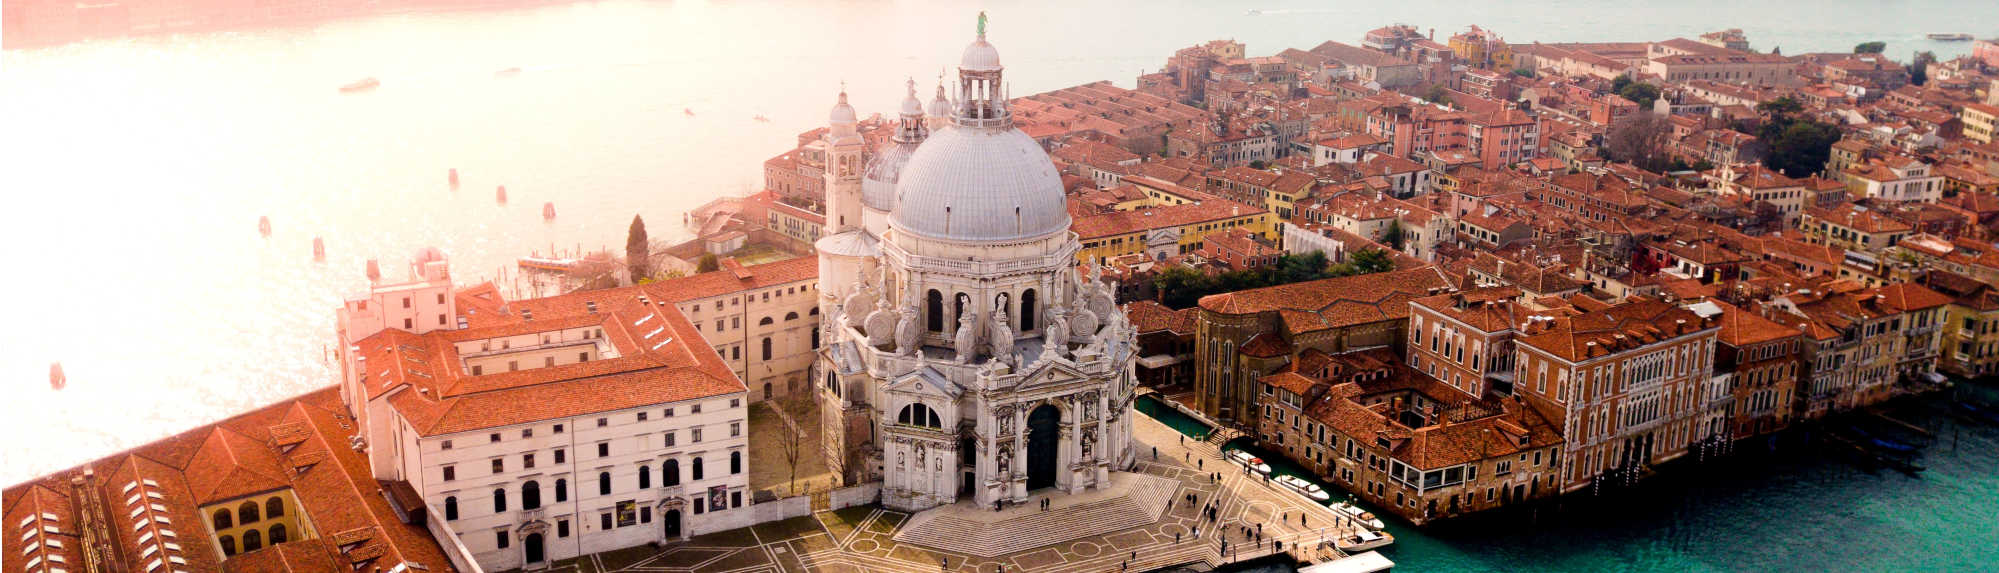 What is the most visited place in Italy?